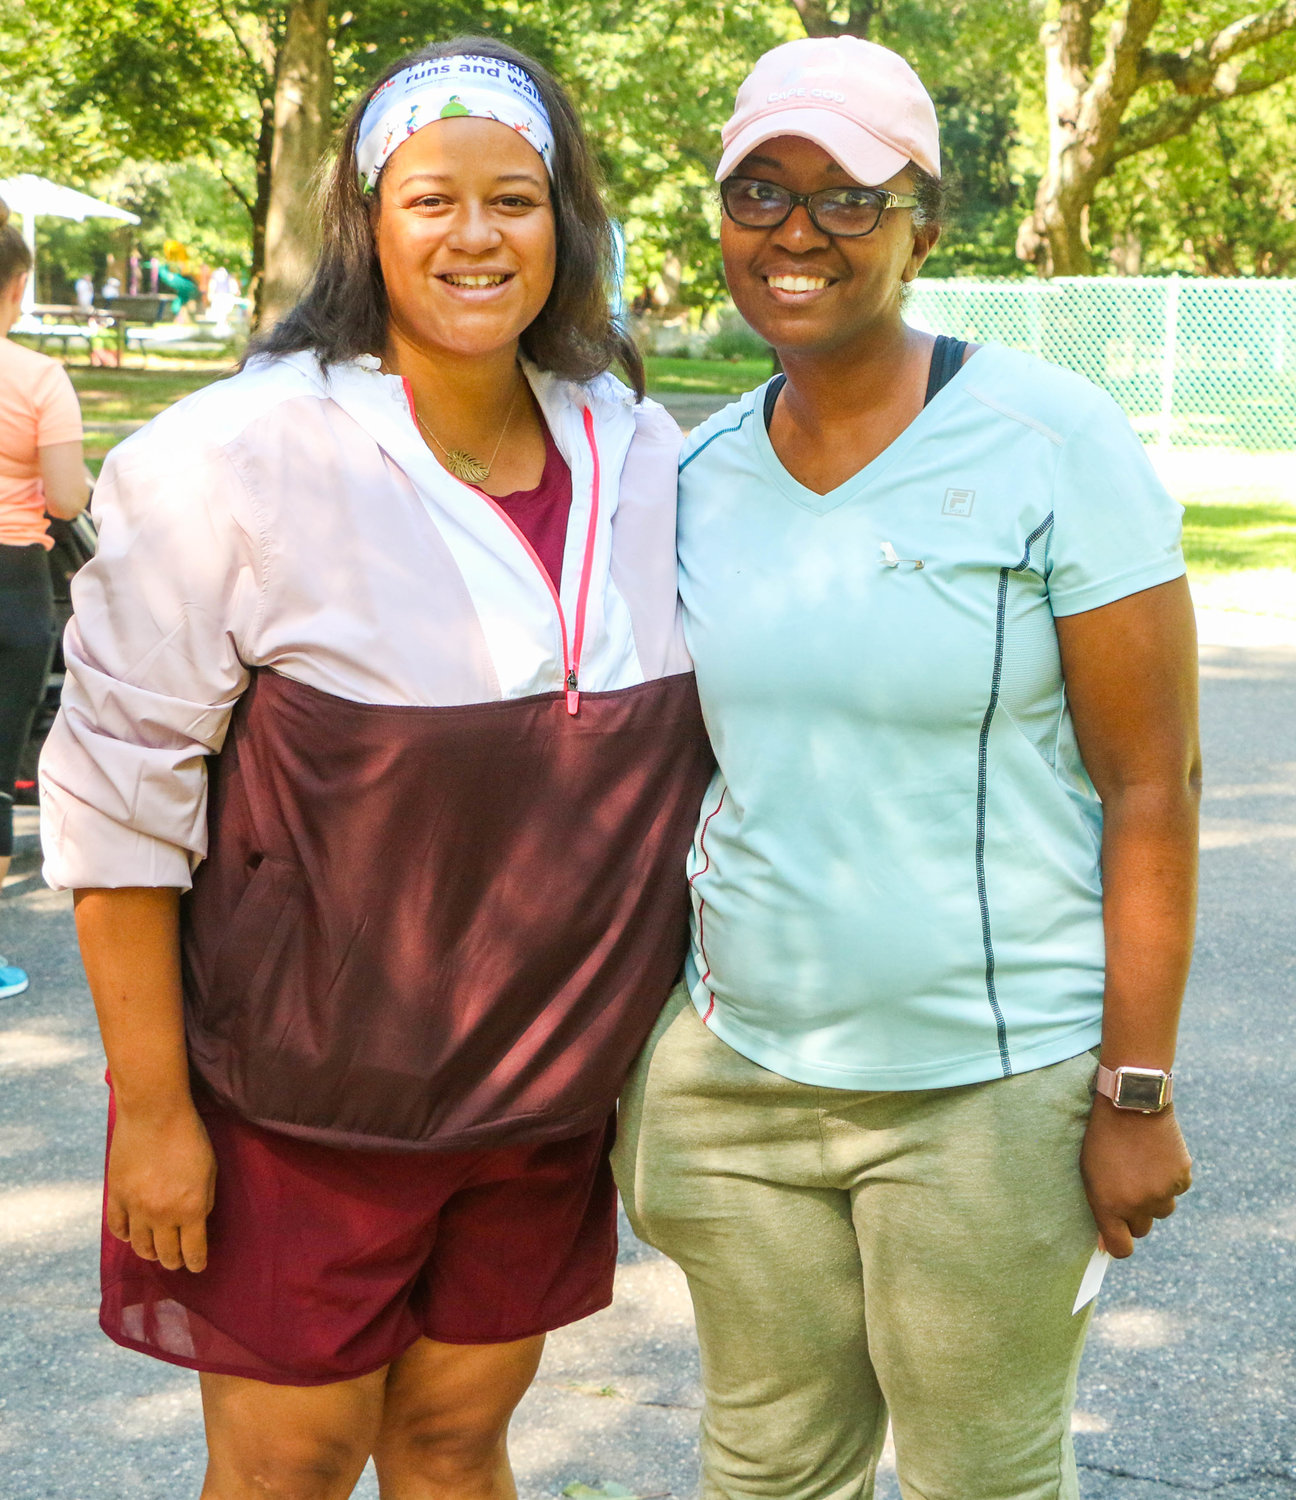 Assemblywoman Michaelle Solages, left, with Cellandia Bart-Teel, who after surviving a brain tumor has taken up running to maintain her health.